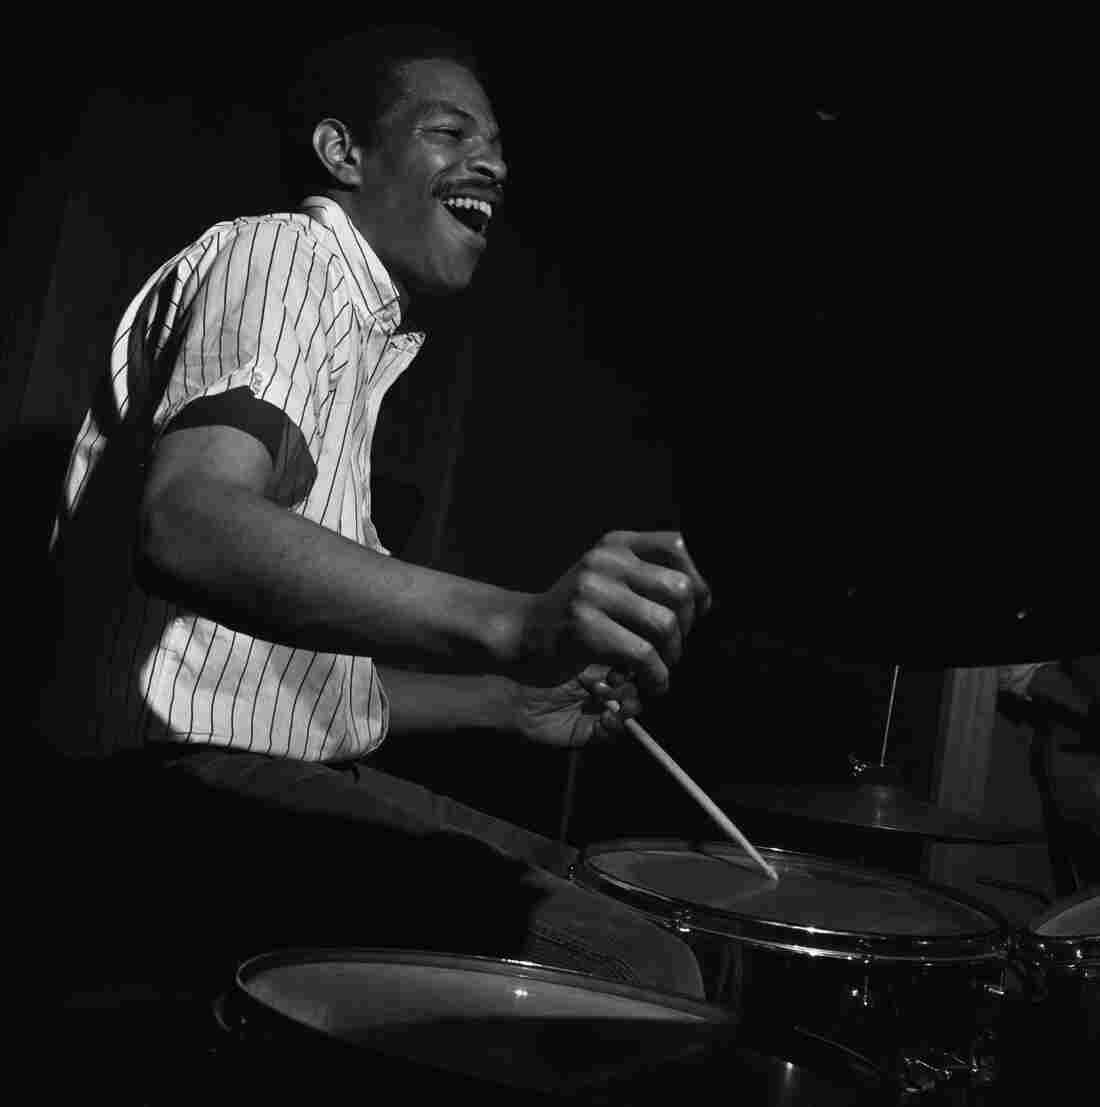 Drummer Pete La Roca plays during the May 19, 1965 recording session for his album Basra.